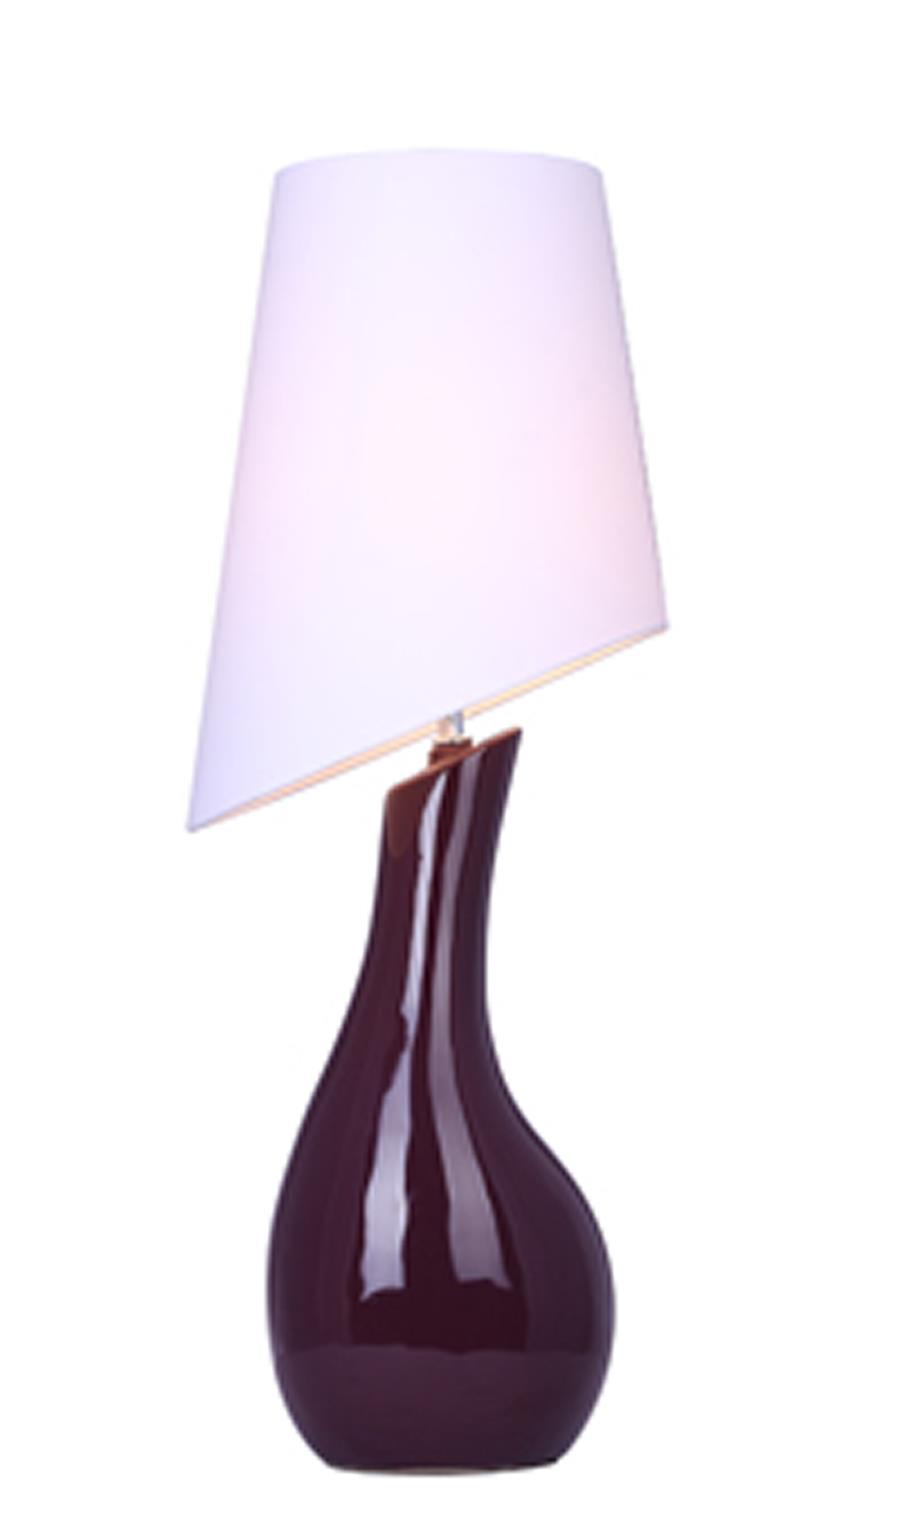 Curved Purple Ceramic Table Lamp with Asymmetrical White Shade